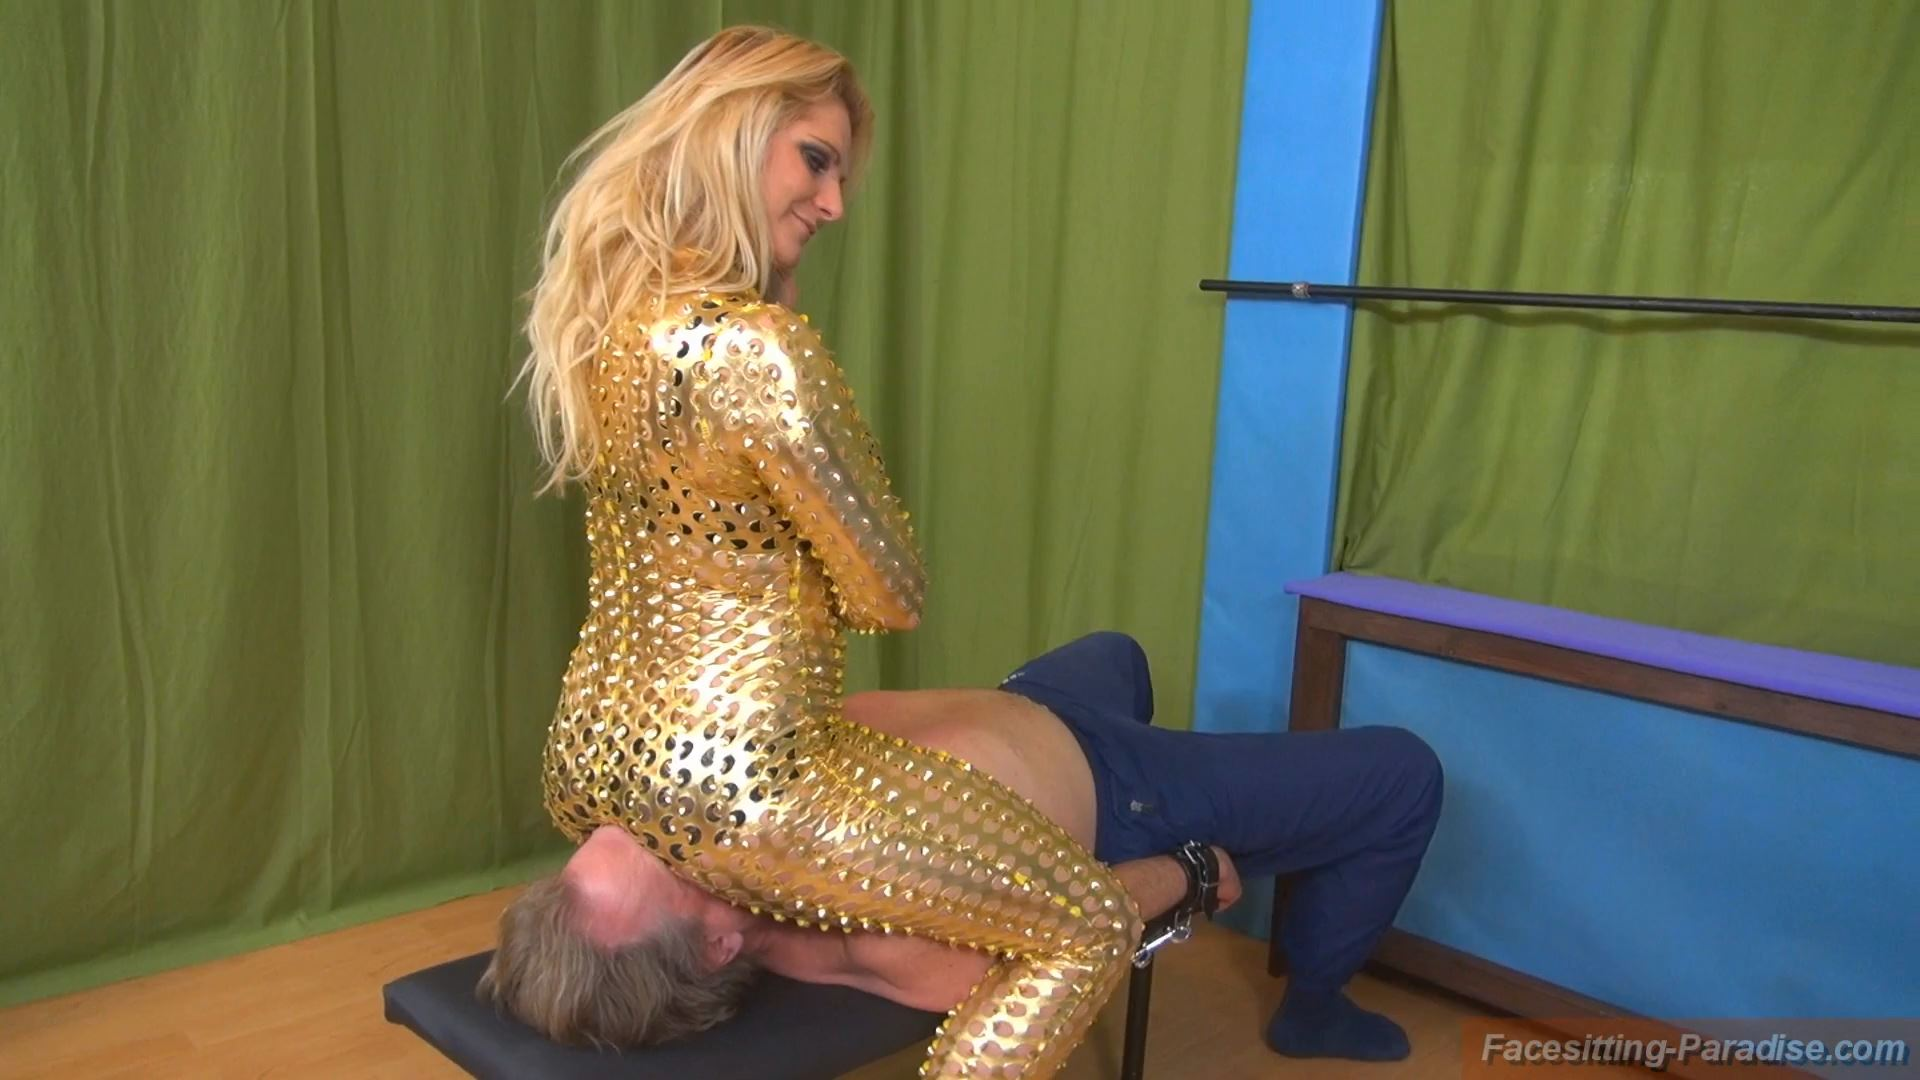 Katrin In Scene: You are the seat for the golden angel - FACESITTING-PARADISE - FULL HD/1080p/MP4